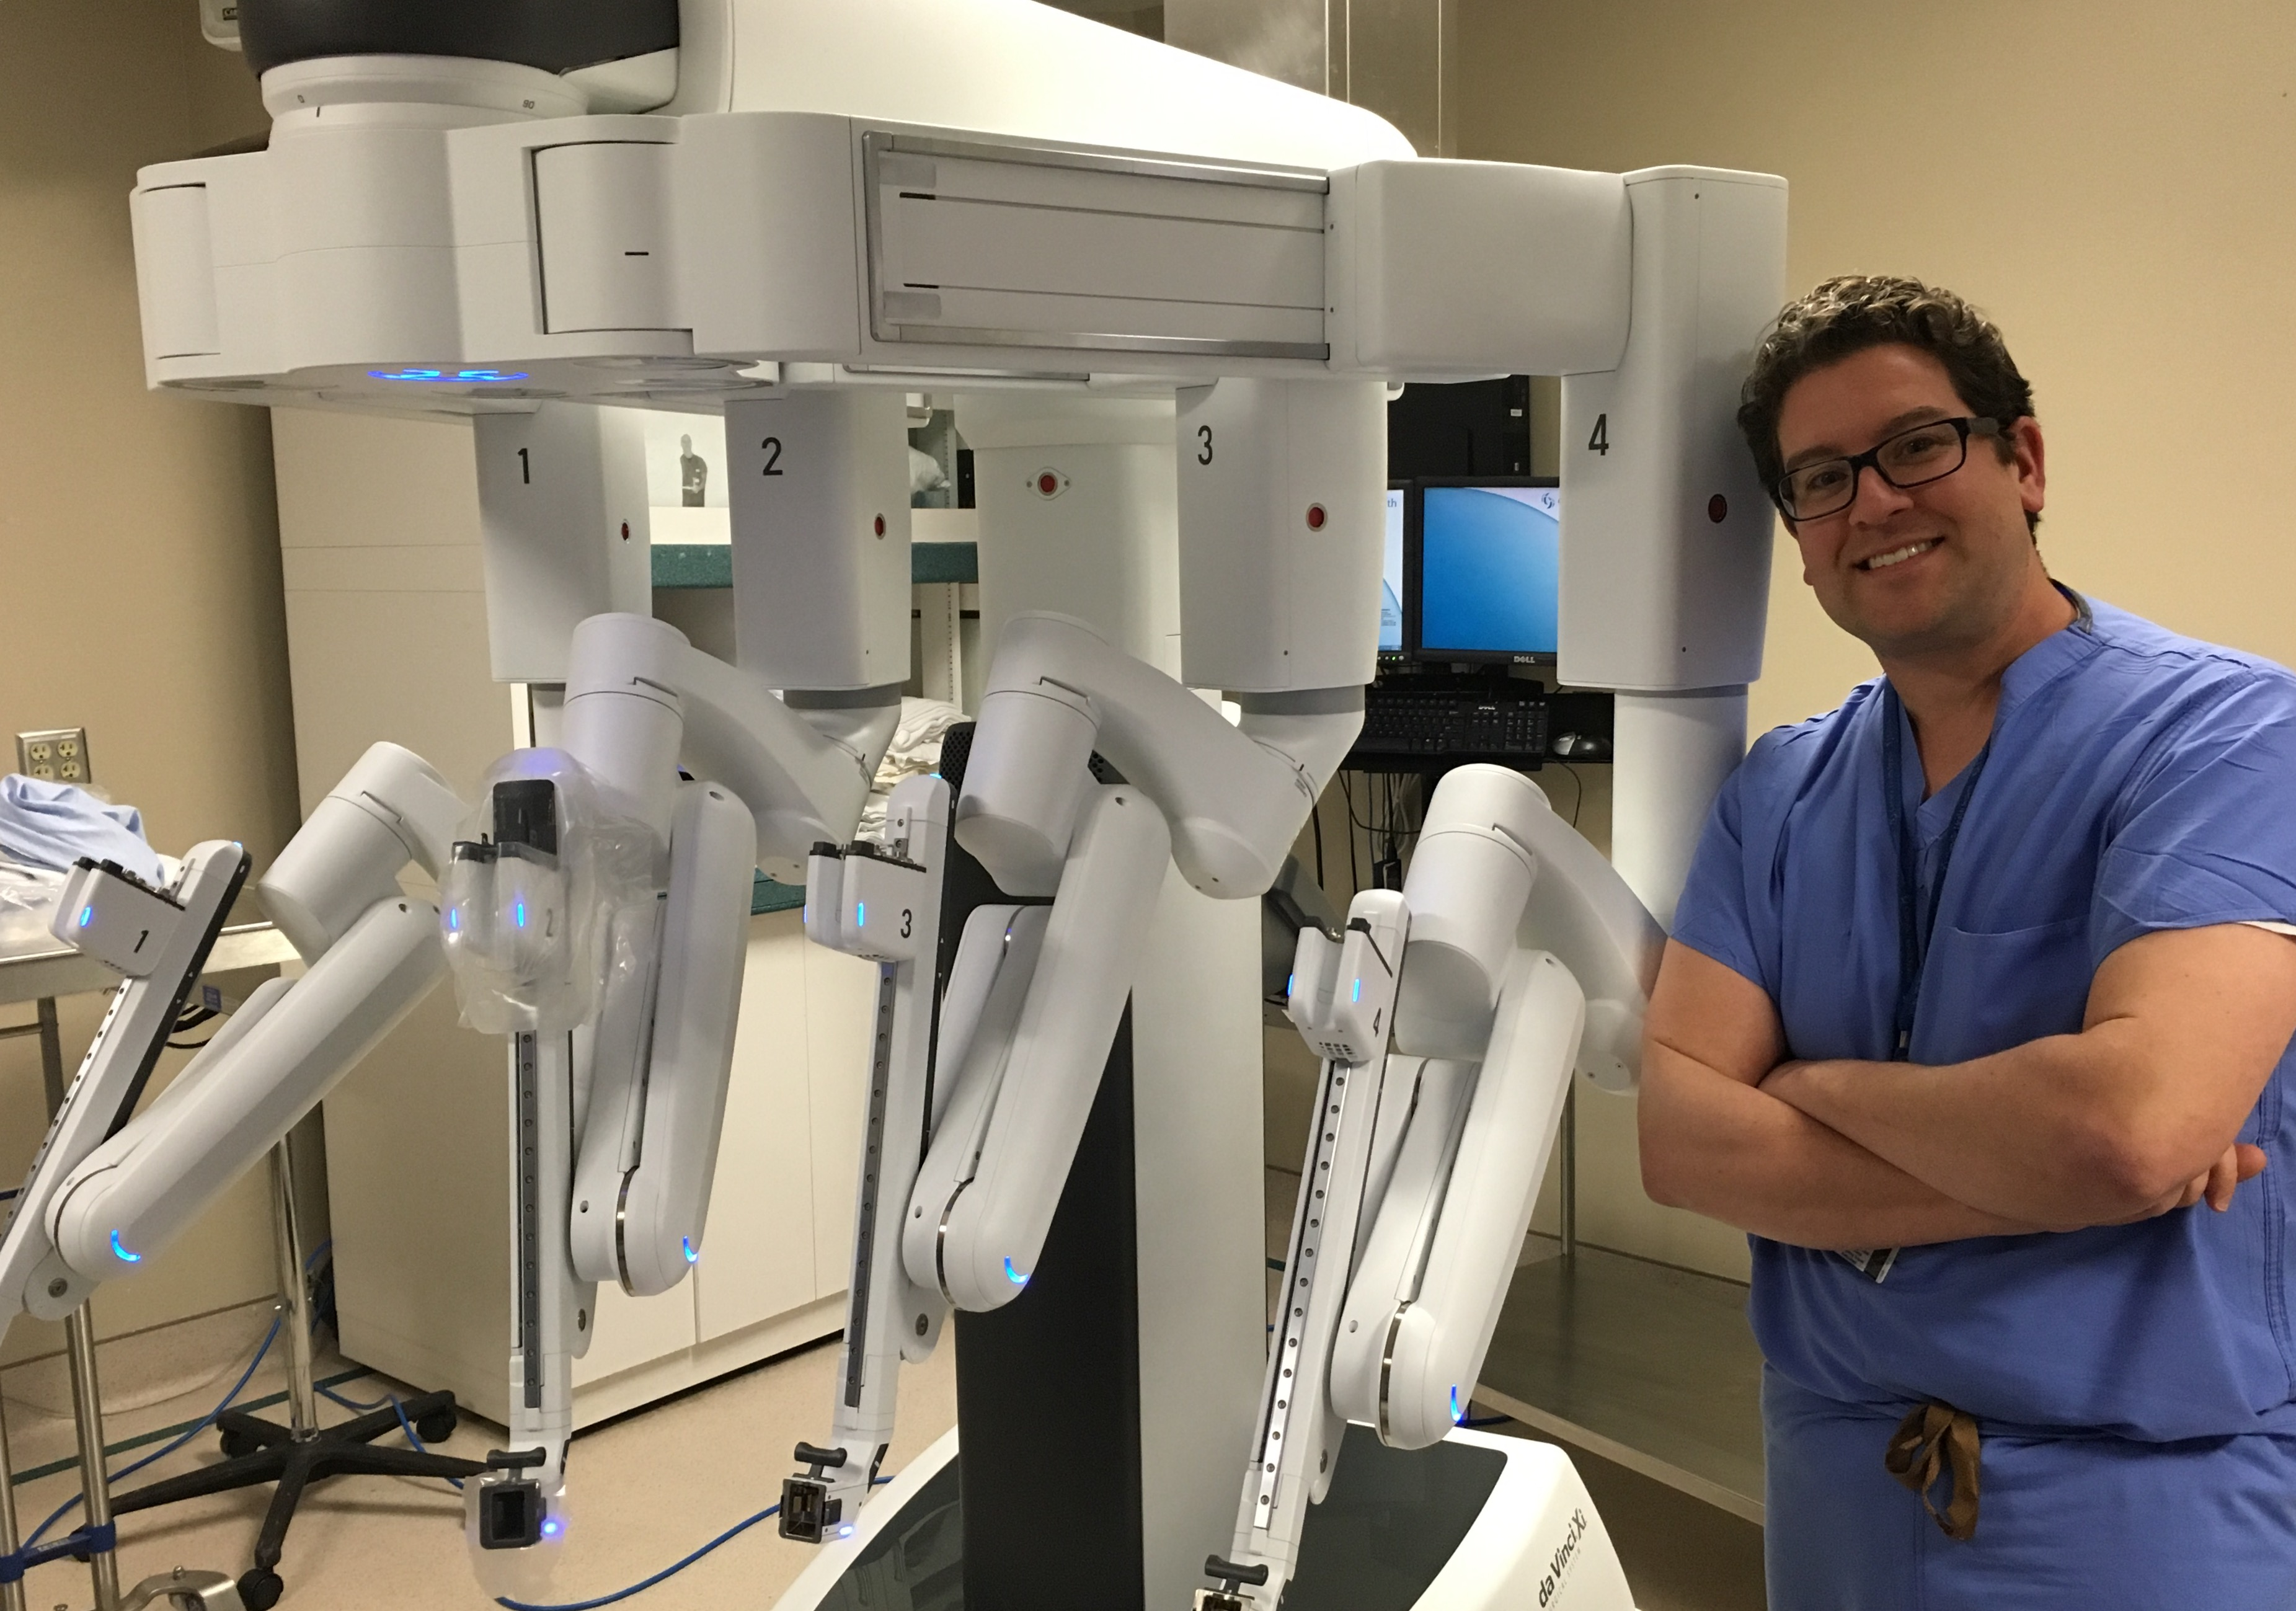 robotic assisted surgery analysis Intuitive surgical, maker of the da vinci surgical system, is committed to developing robotic-assisted technologies, tools and services that bring enhanced predictability to surgery.